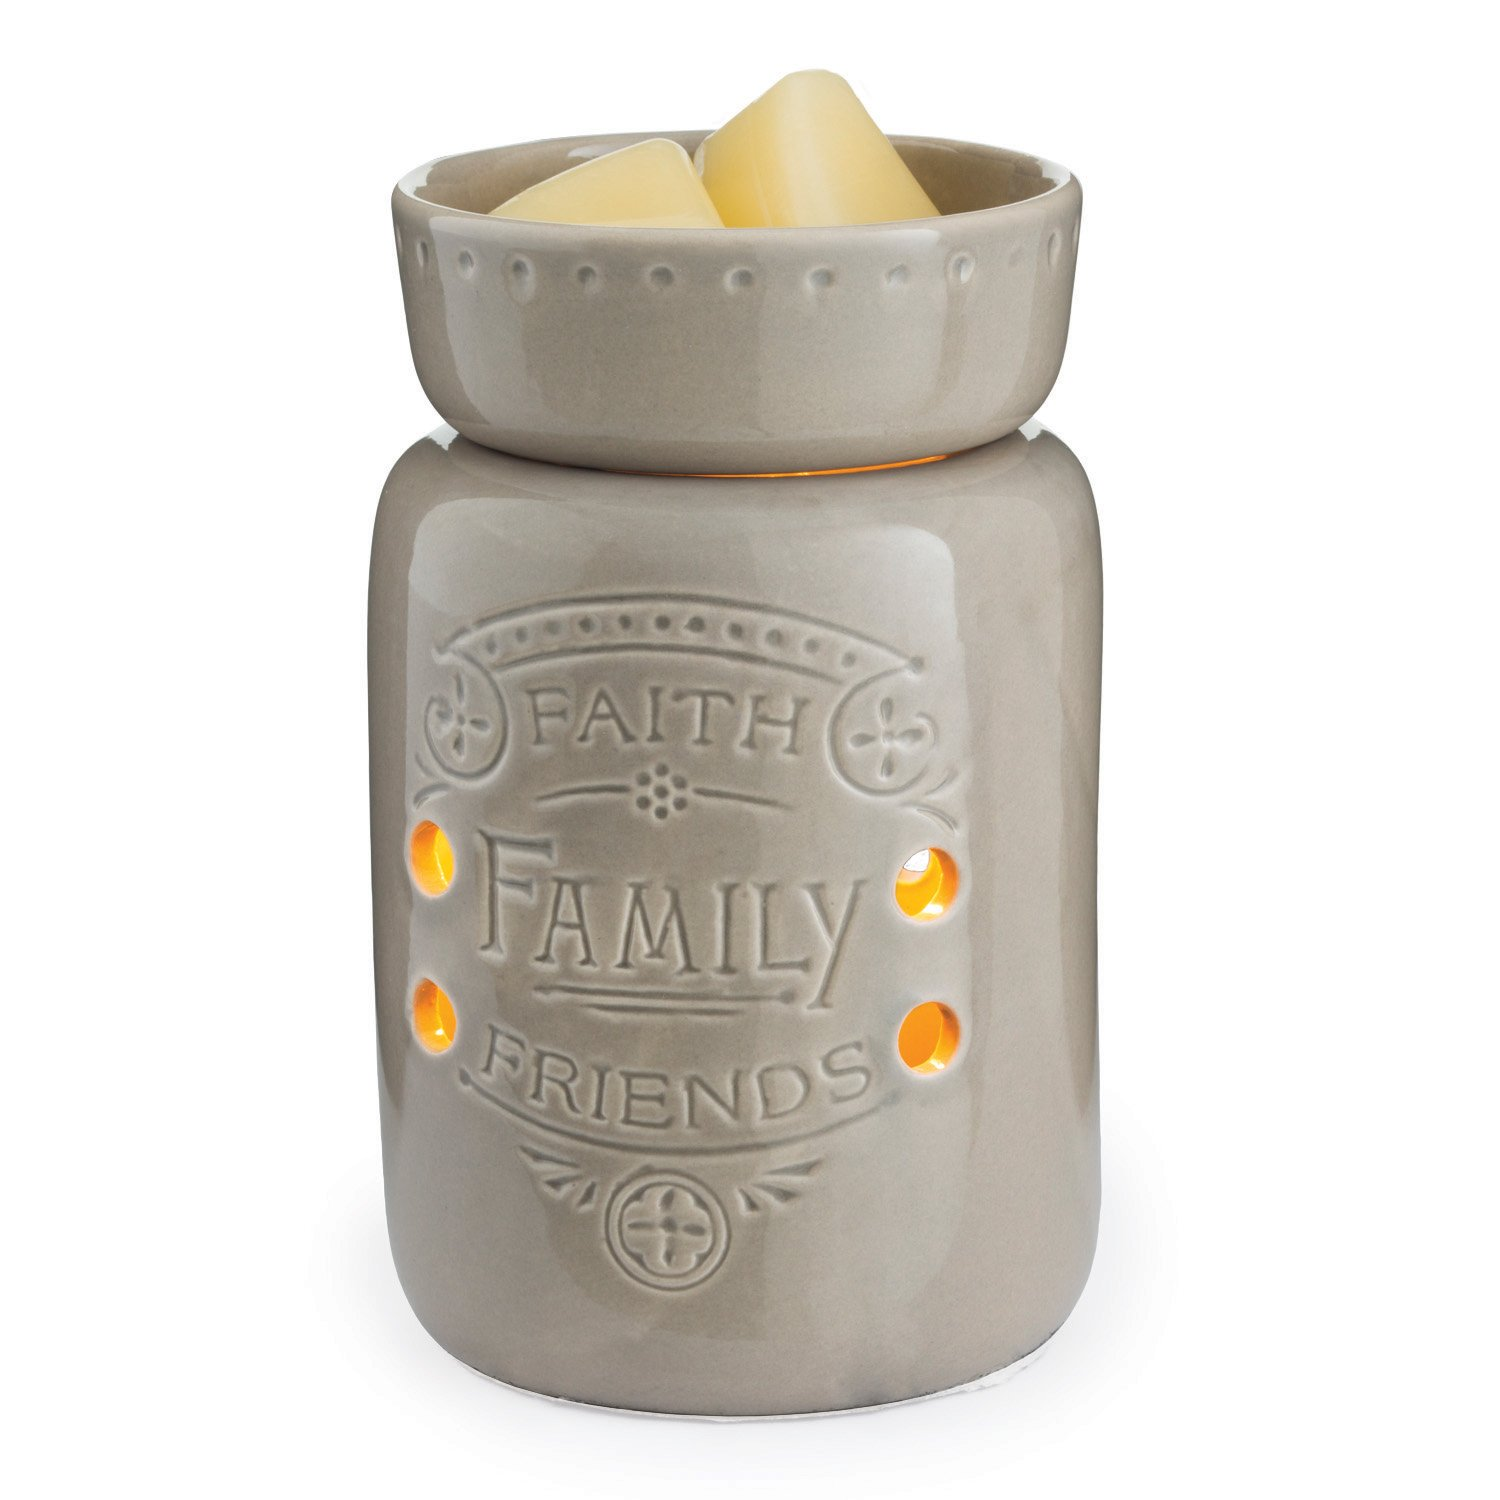 CANDLE WARMERS ETCMidsized Illumination Fragrance Warmer- Light-Up Warmer For Warming Scented Candle Wax Melts and Tarts or Essential Oils To Freshen Room, Faith, Family, Friends